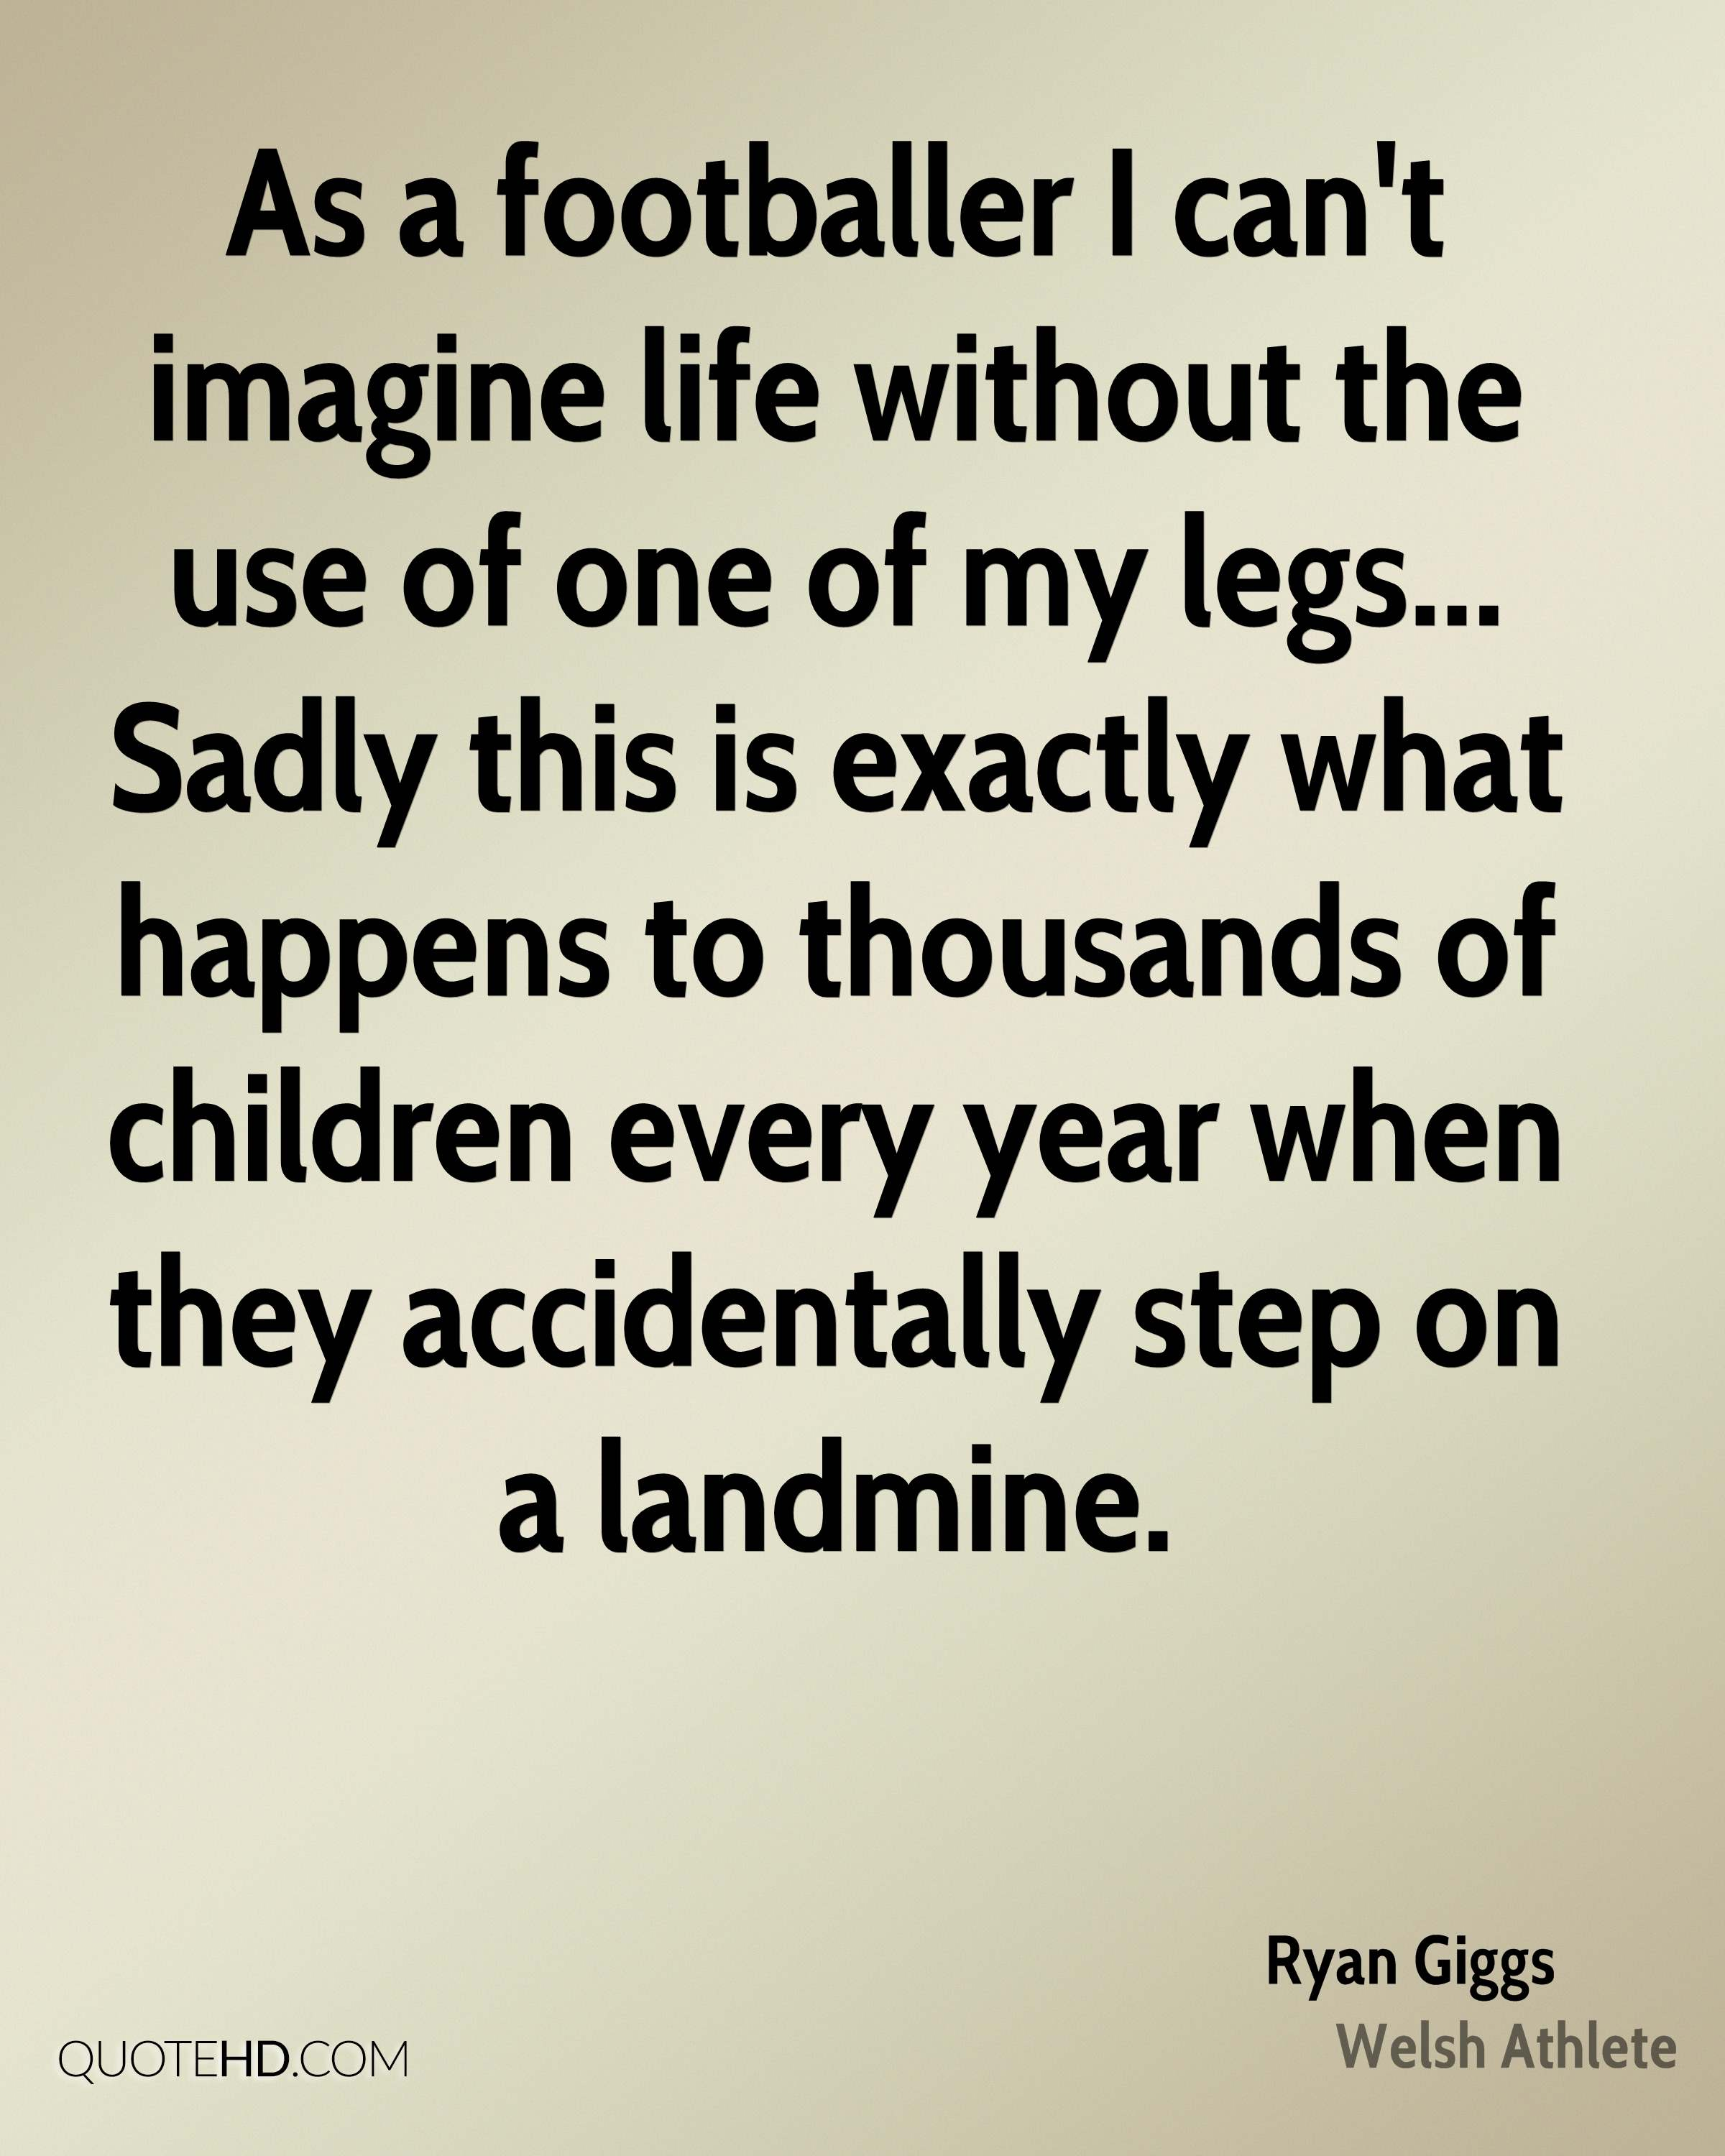 As a footballer I can't imagine life without the use of one of my legs... Sadly this is exactly what happens to thousands of children every year when they accidentally step on a landmine.